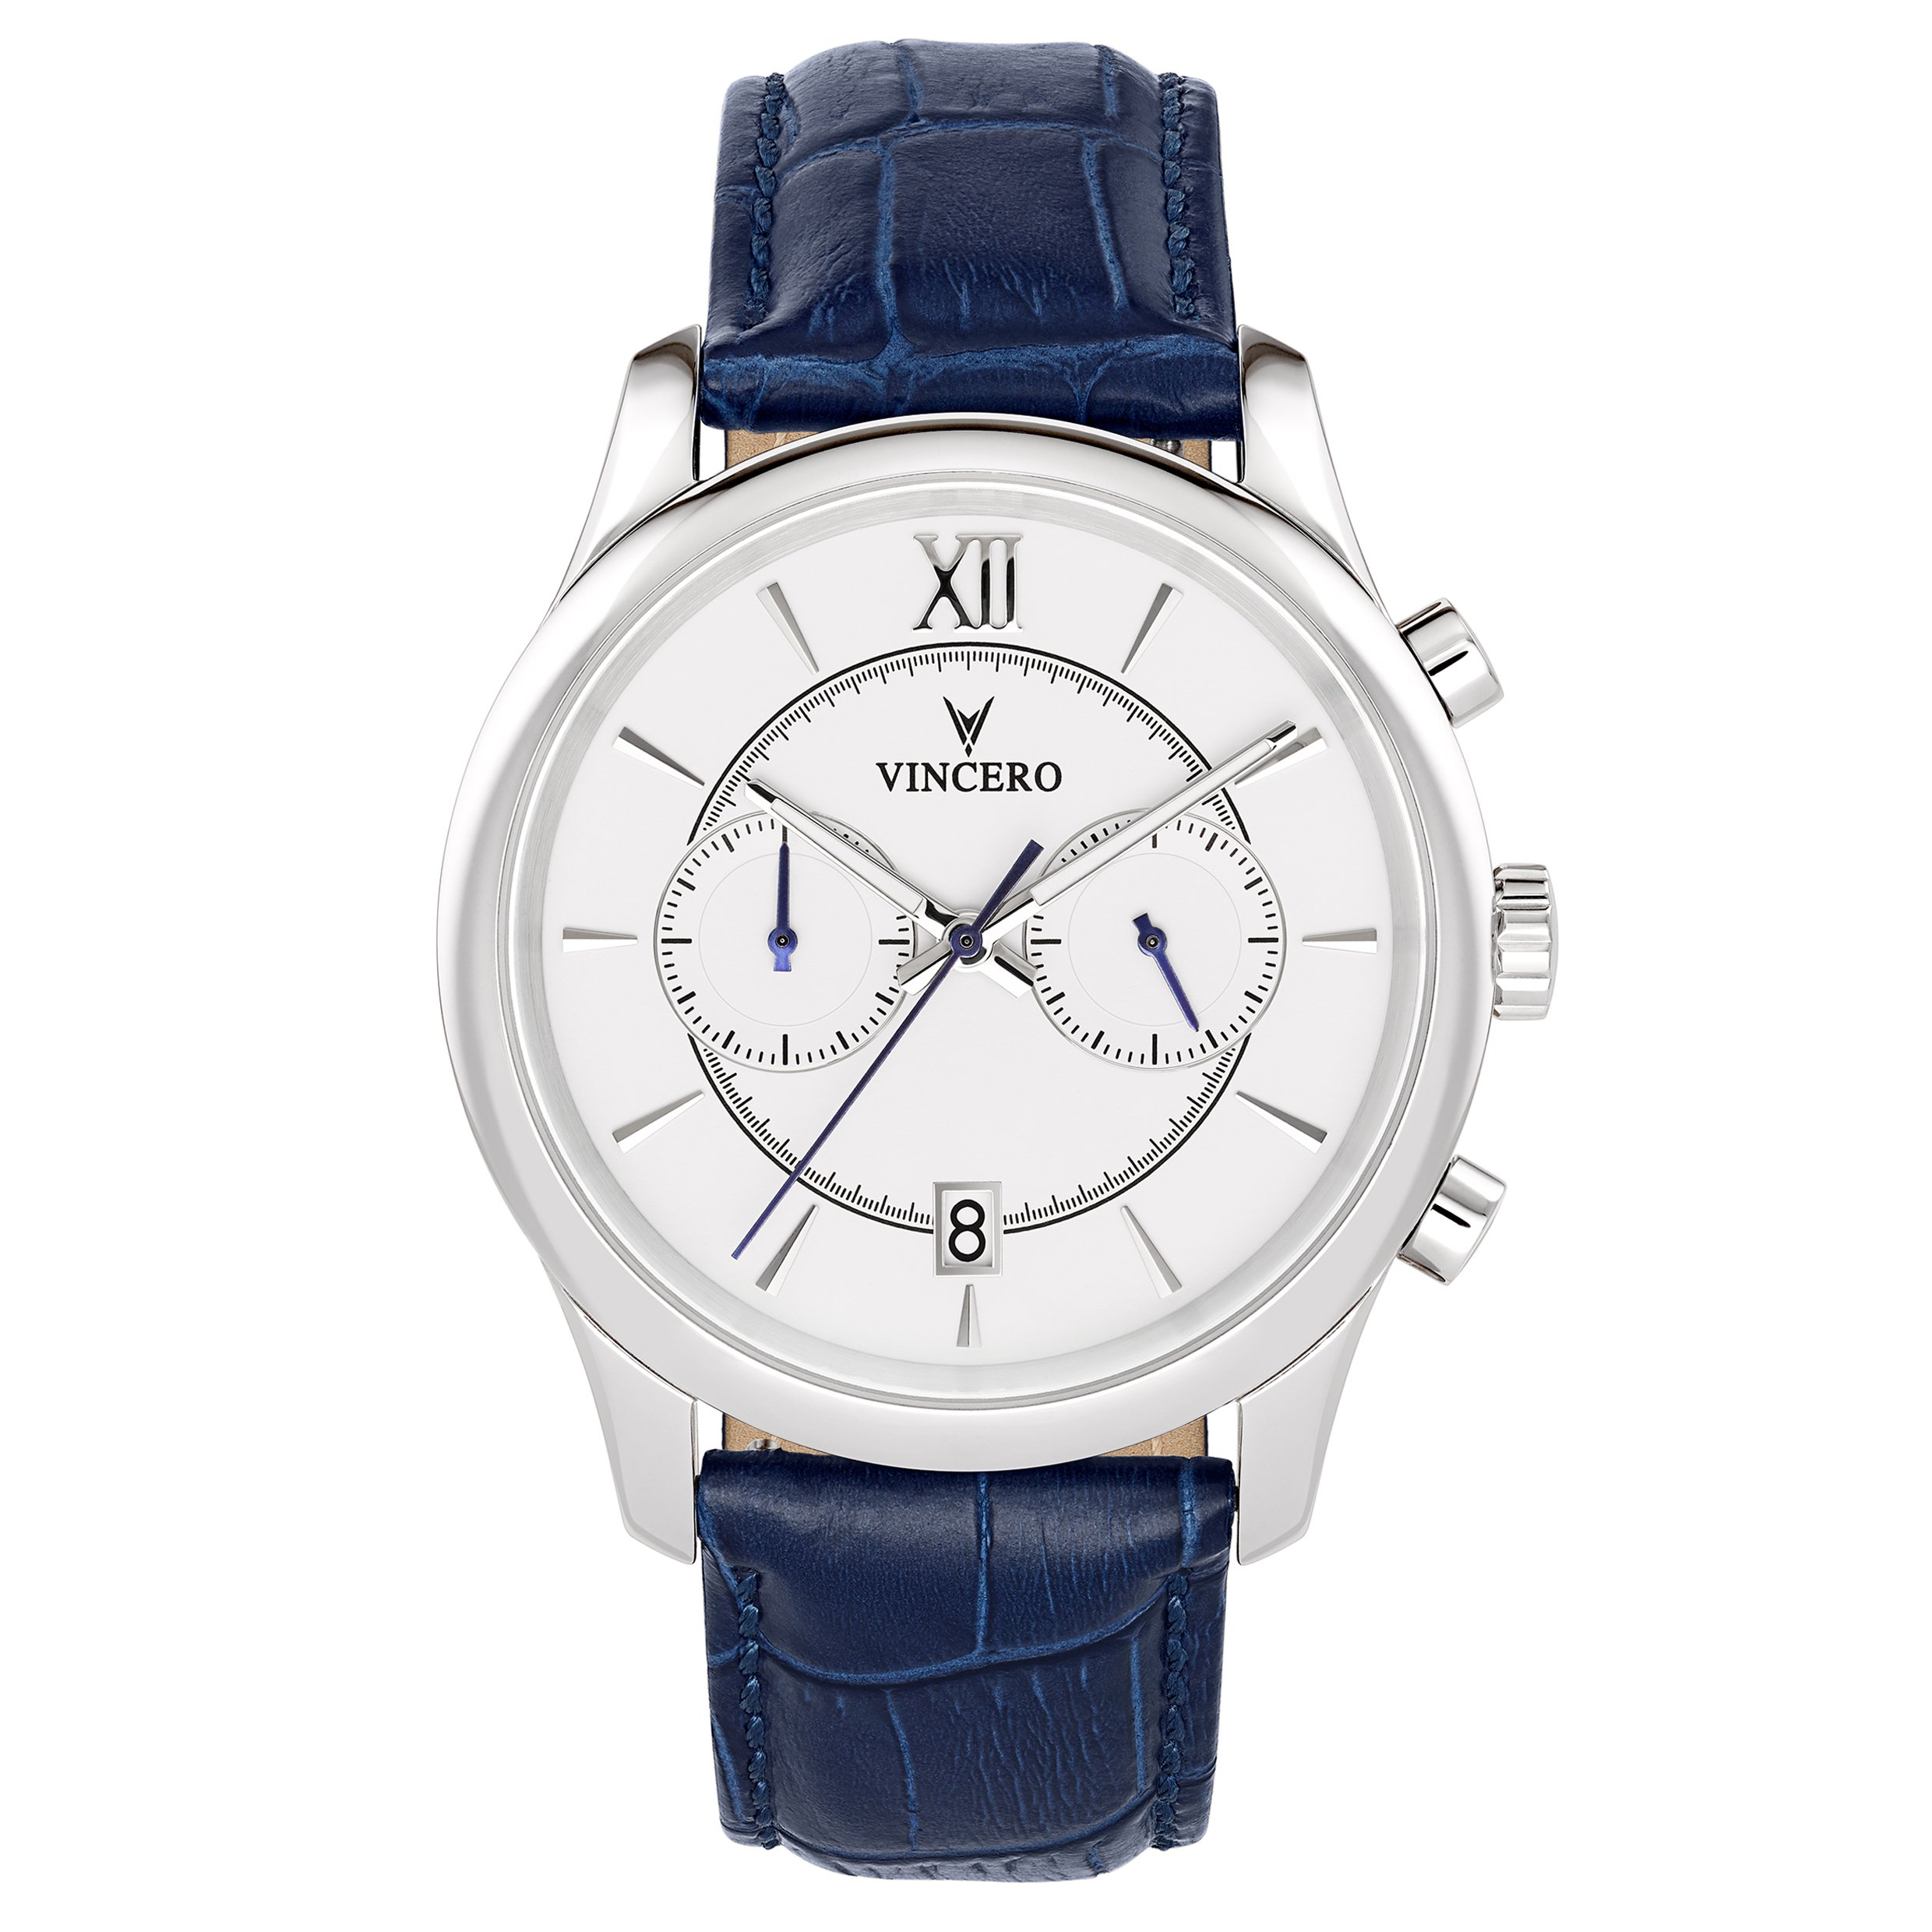 Vincero Men's Bellwether White & Silver Chronograph Watch with Leather Band by Vincero